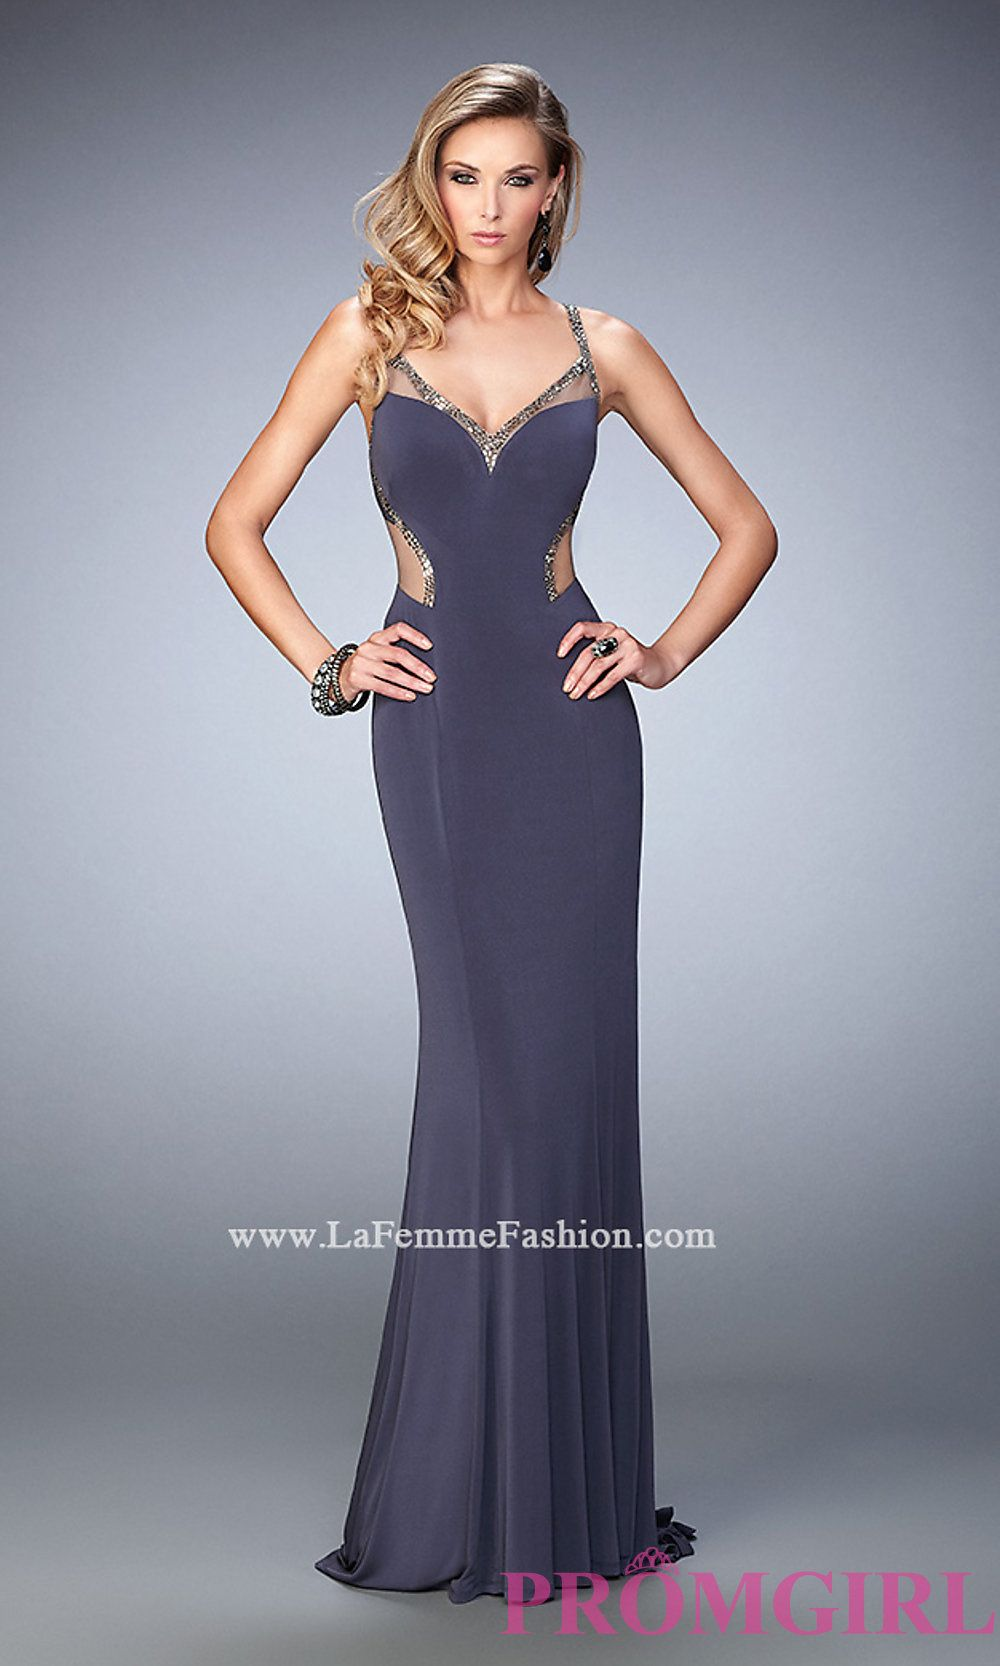 V-Neck Open Back Long La Femme Prom Dress Style: LF-22461 | Dresses ...